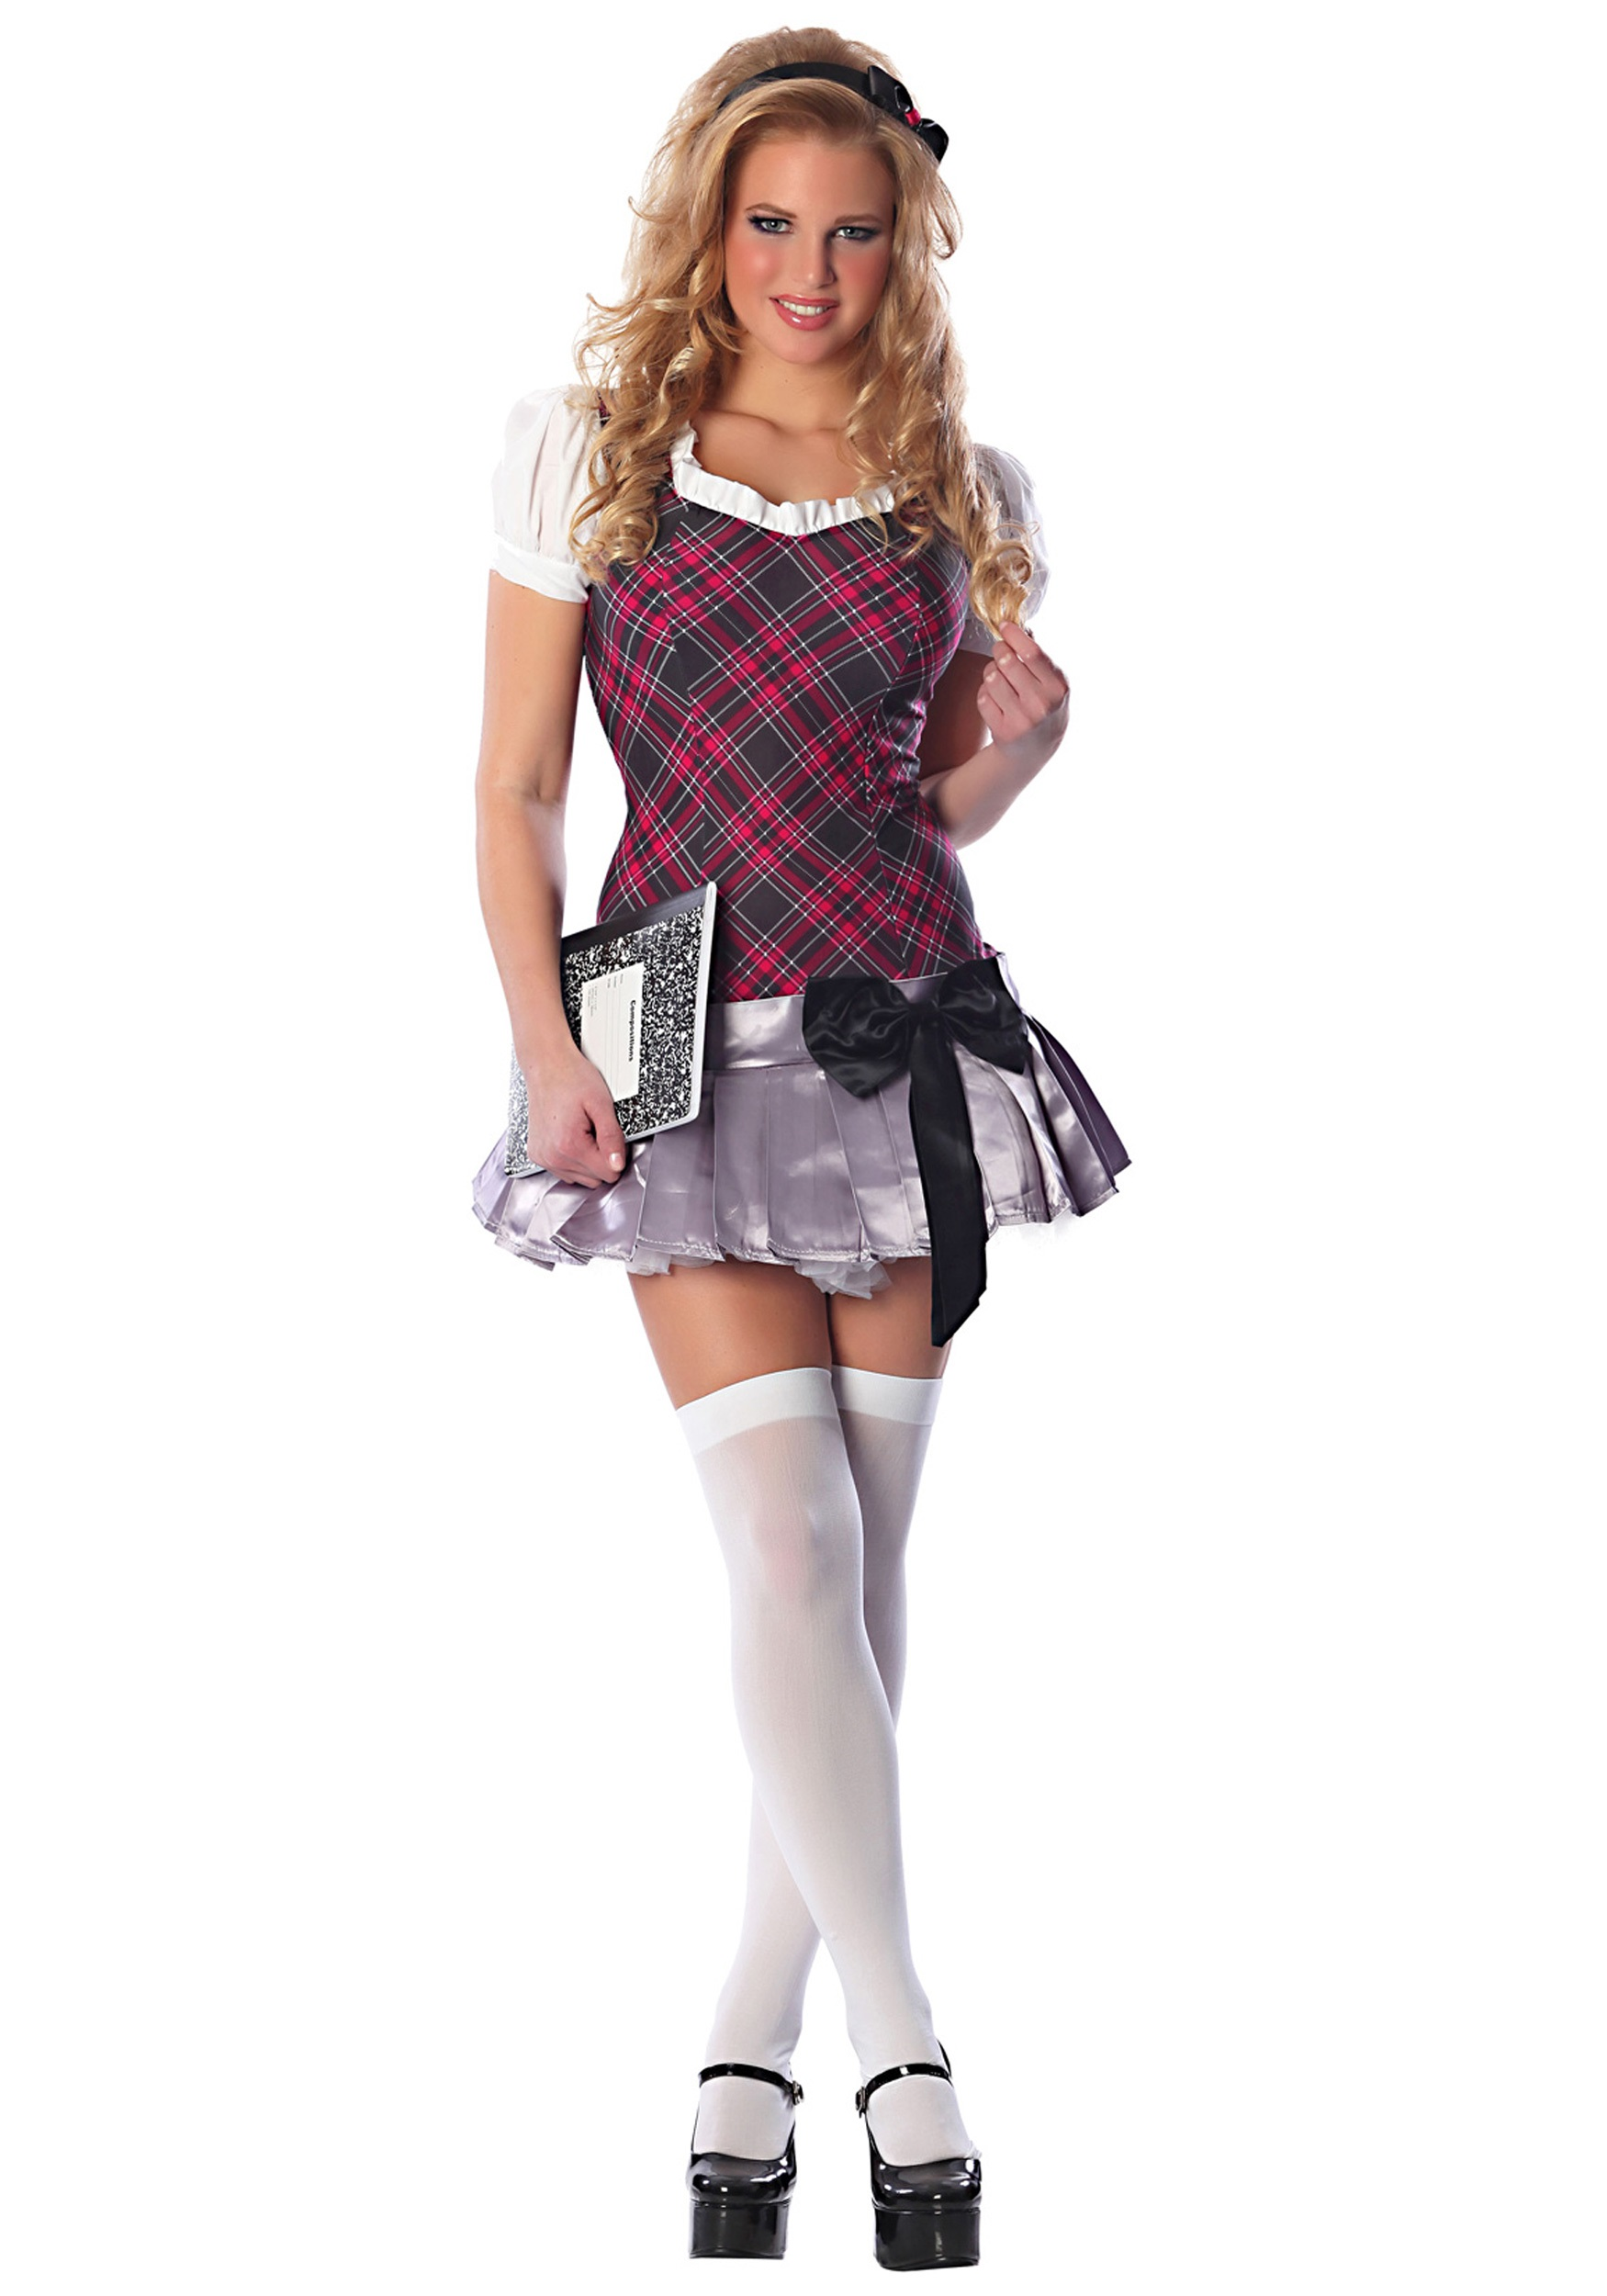 Sexy Collegiate School Girl Costume  sc 1 st  Halloween Costumes & Sexy Collegiate School Girl Costume - Halloween Costume Ideas 2018